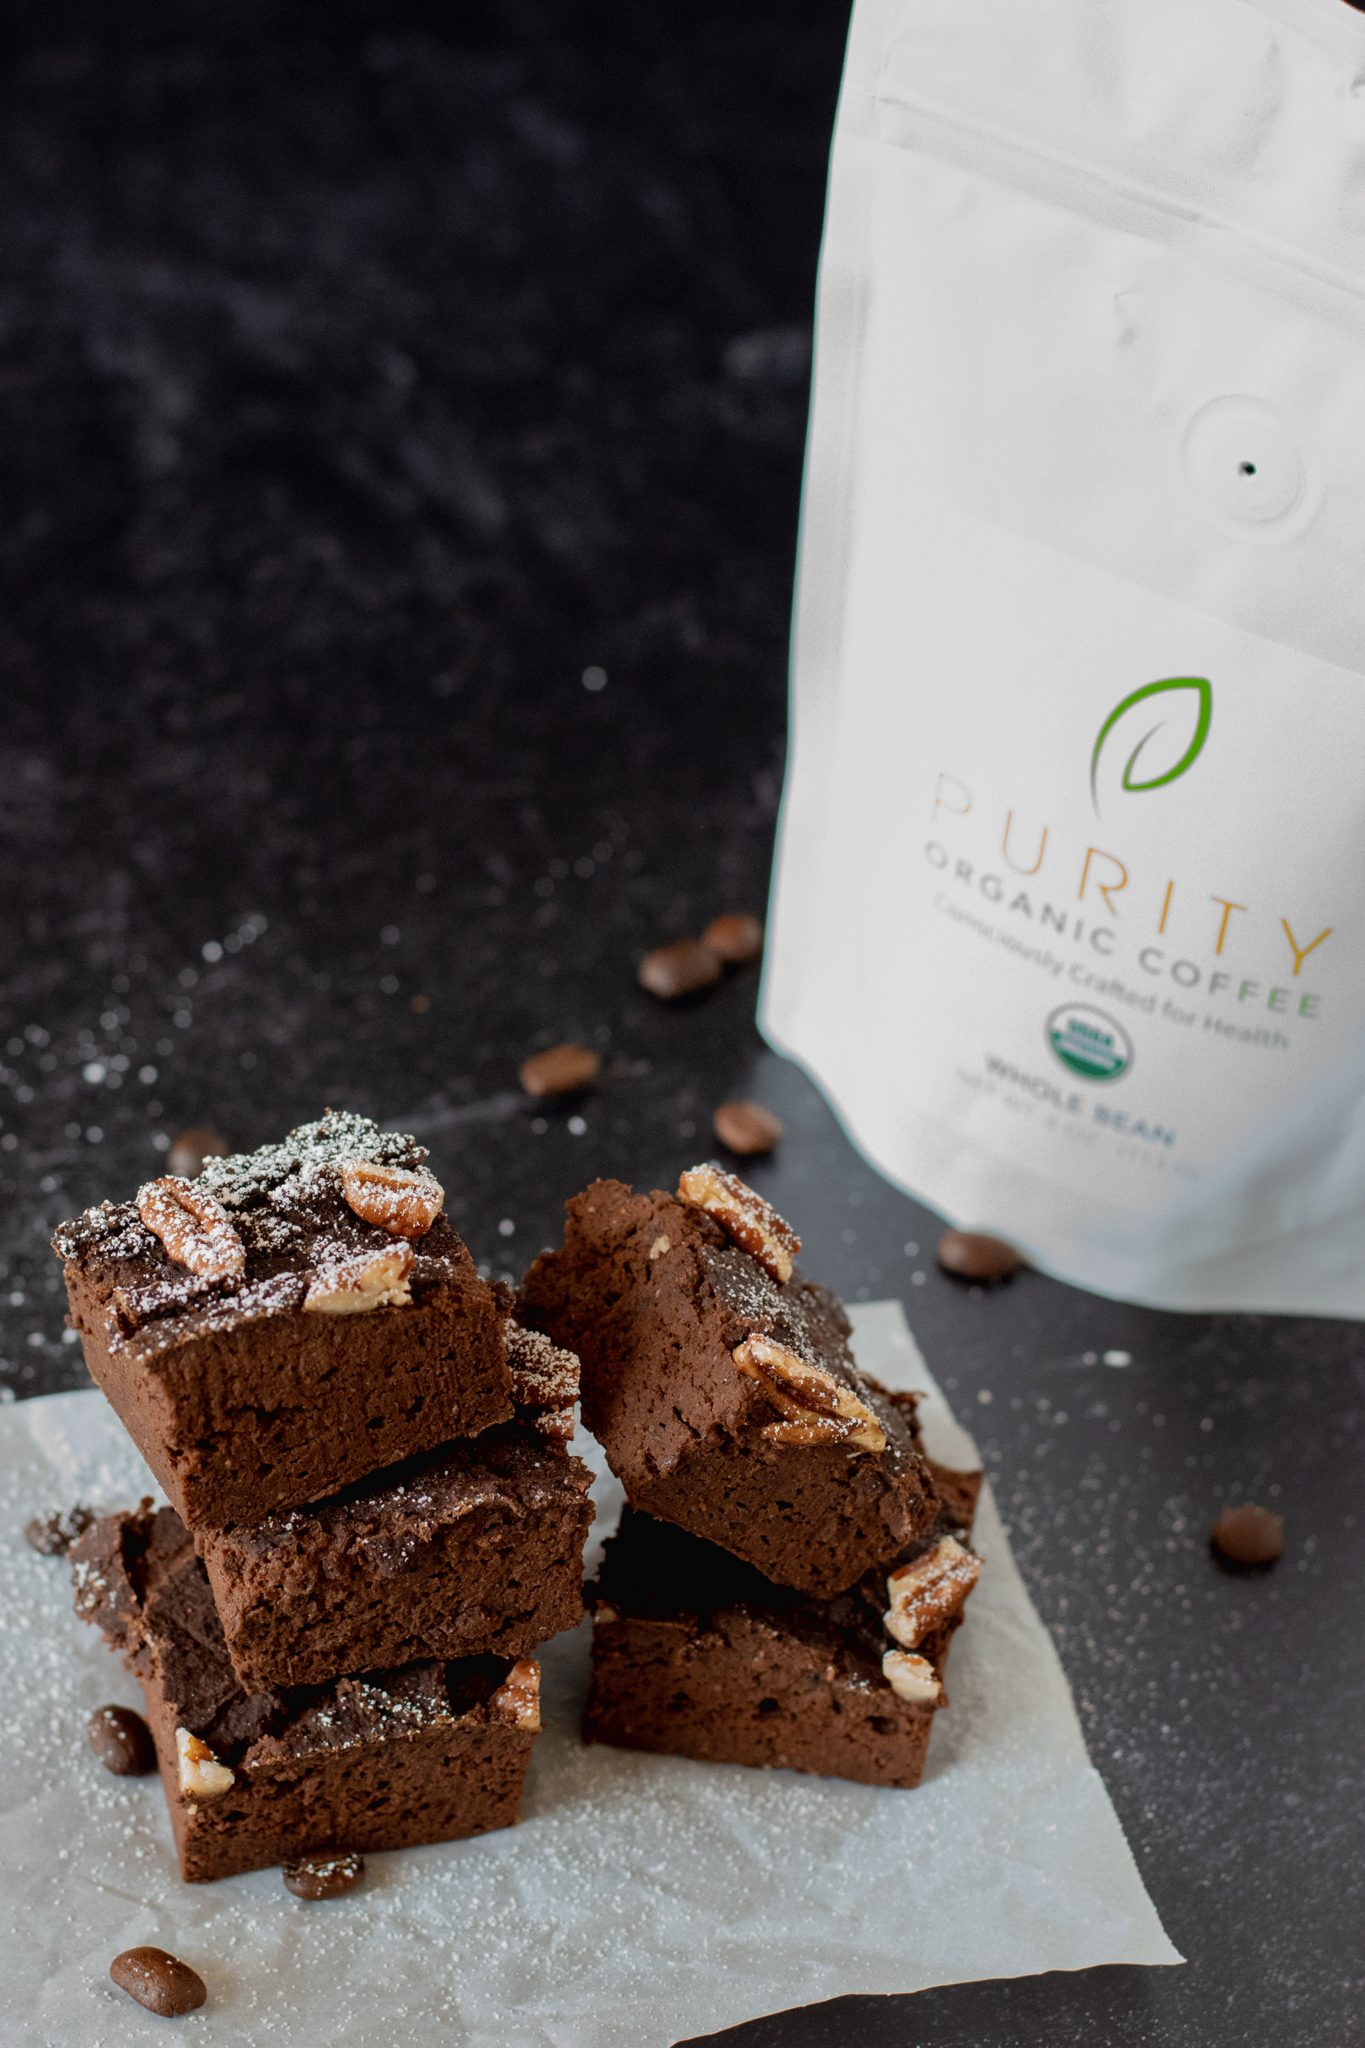 Fudgy Mocha Black Bean Brownies with a bag of Purity Coffee in the background